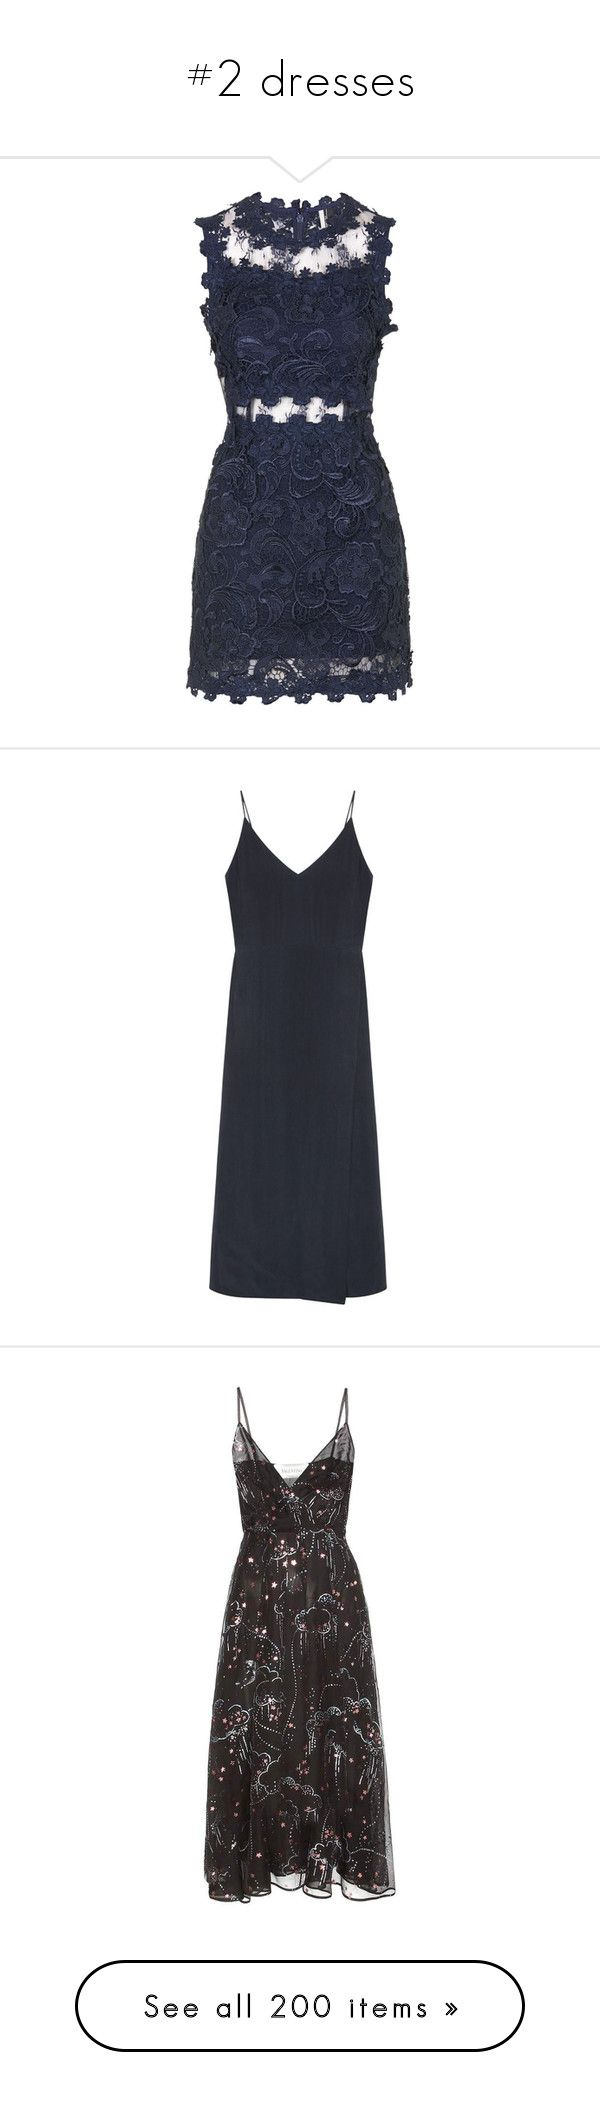 """""""#2 dresses"""" by gecati ❤ liked on Polyvore featuring dresses, dresses short, topshop, navy, body con dress, navy lace cocktail dress, short cocktail dresses, navy blue short dress, navy blue lace dress and atea oceanie"""